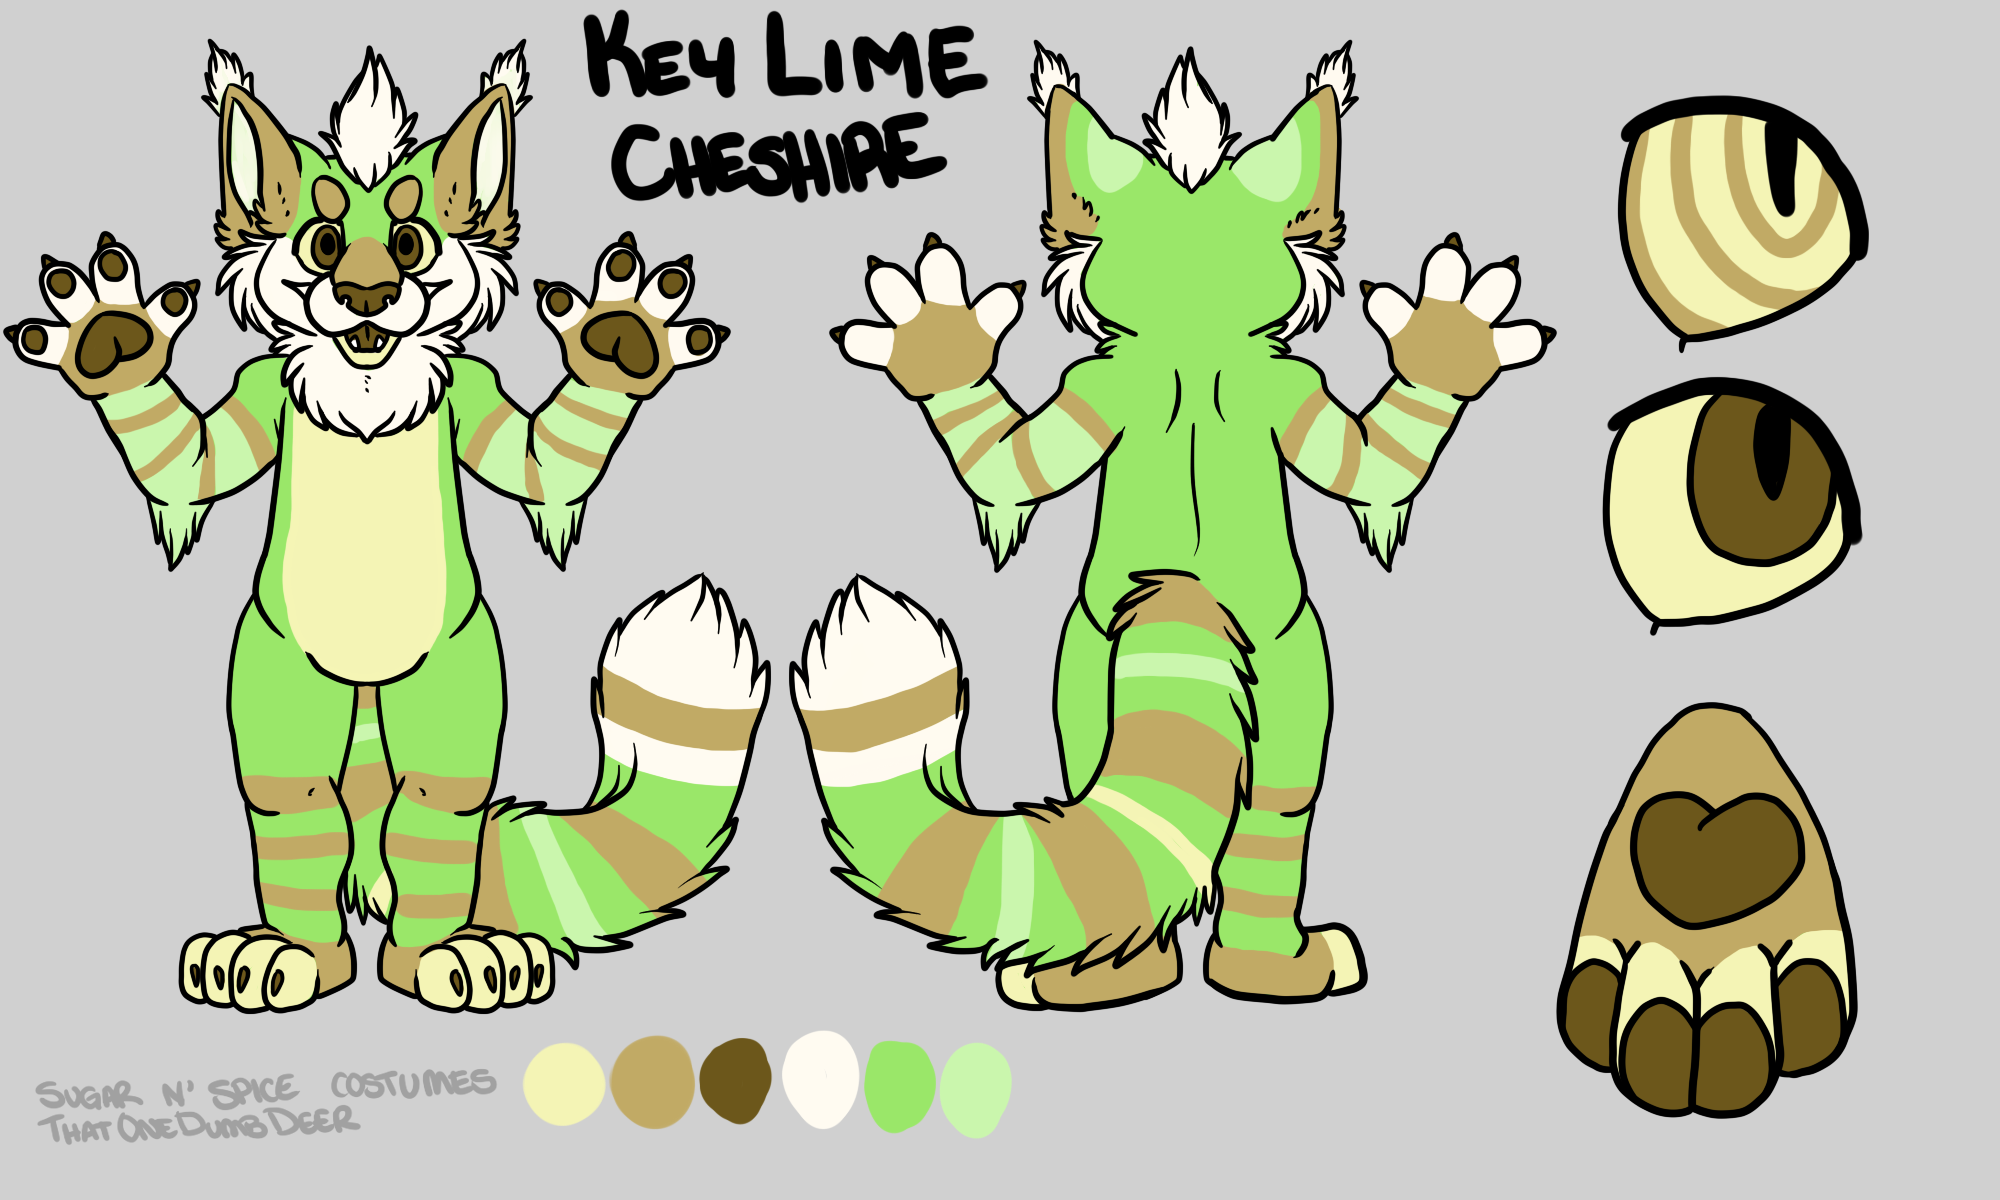 Key lime Cheshire Linx - $1950 Plantigrade Full suit$2100 Didgigrade Full suit. This suit will include a badge from Lilbobleat